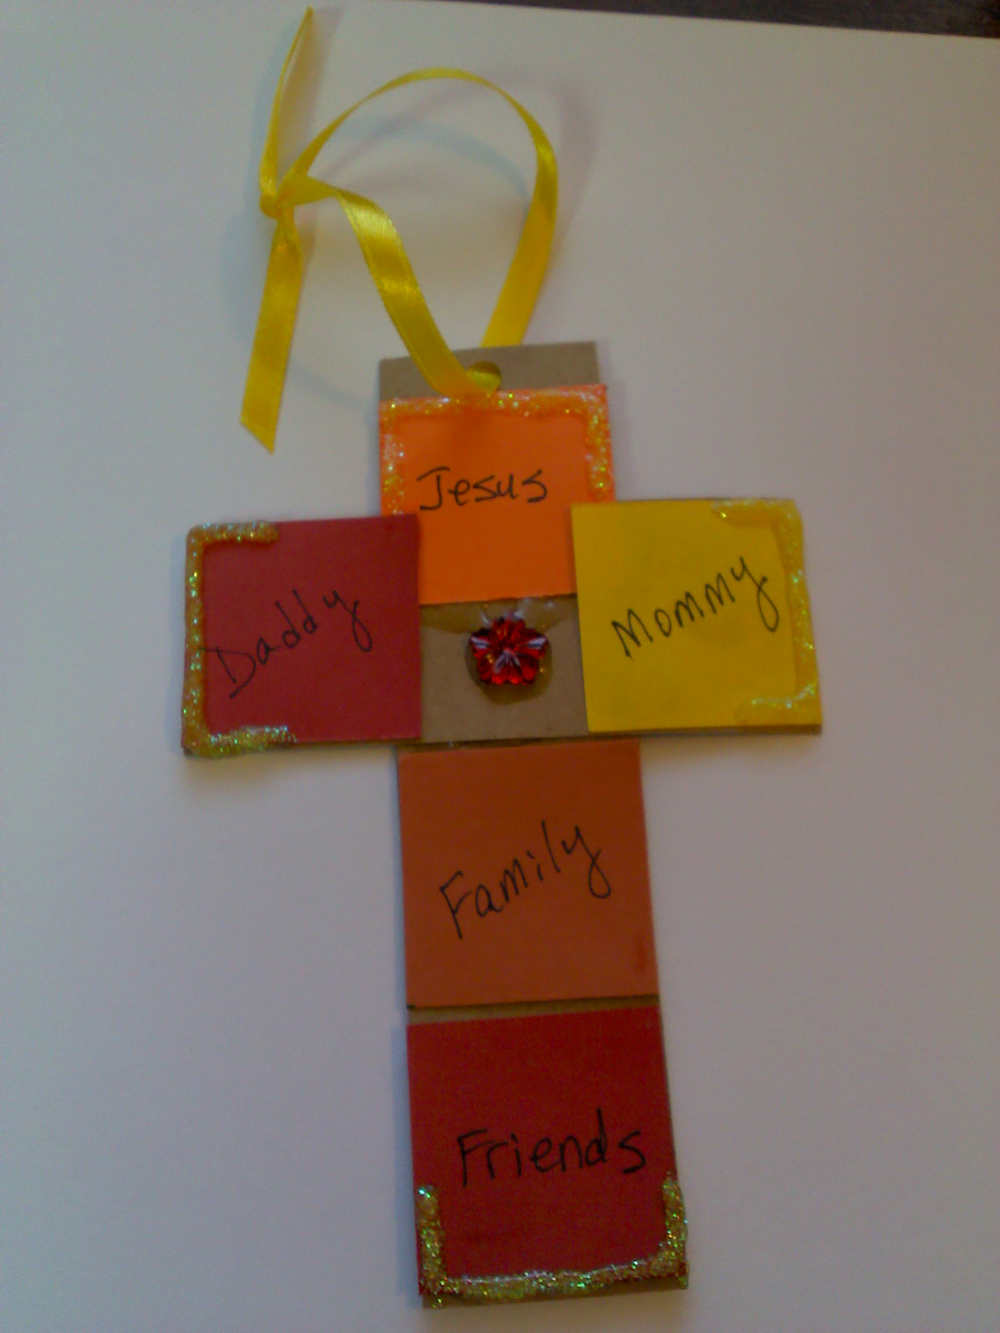 Bible Craft Ideas For Kids Part - 38: Are You Looking For Some Thanksgiving Bible Craft Ideas That You Can Do  With Your Children? Here Are 5 Thanksgiving Bible Craft Ideas That You May  Want To ...